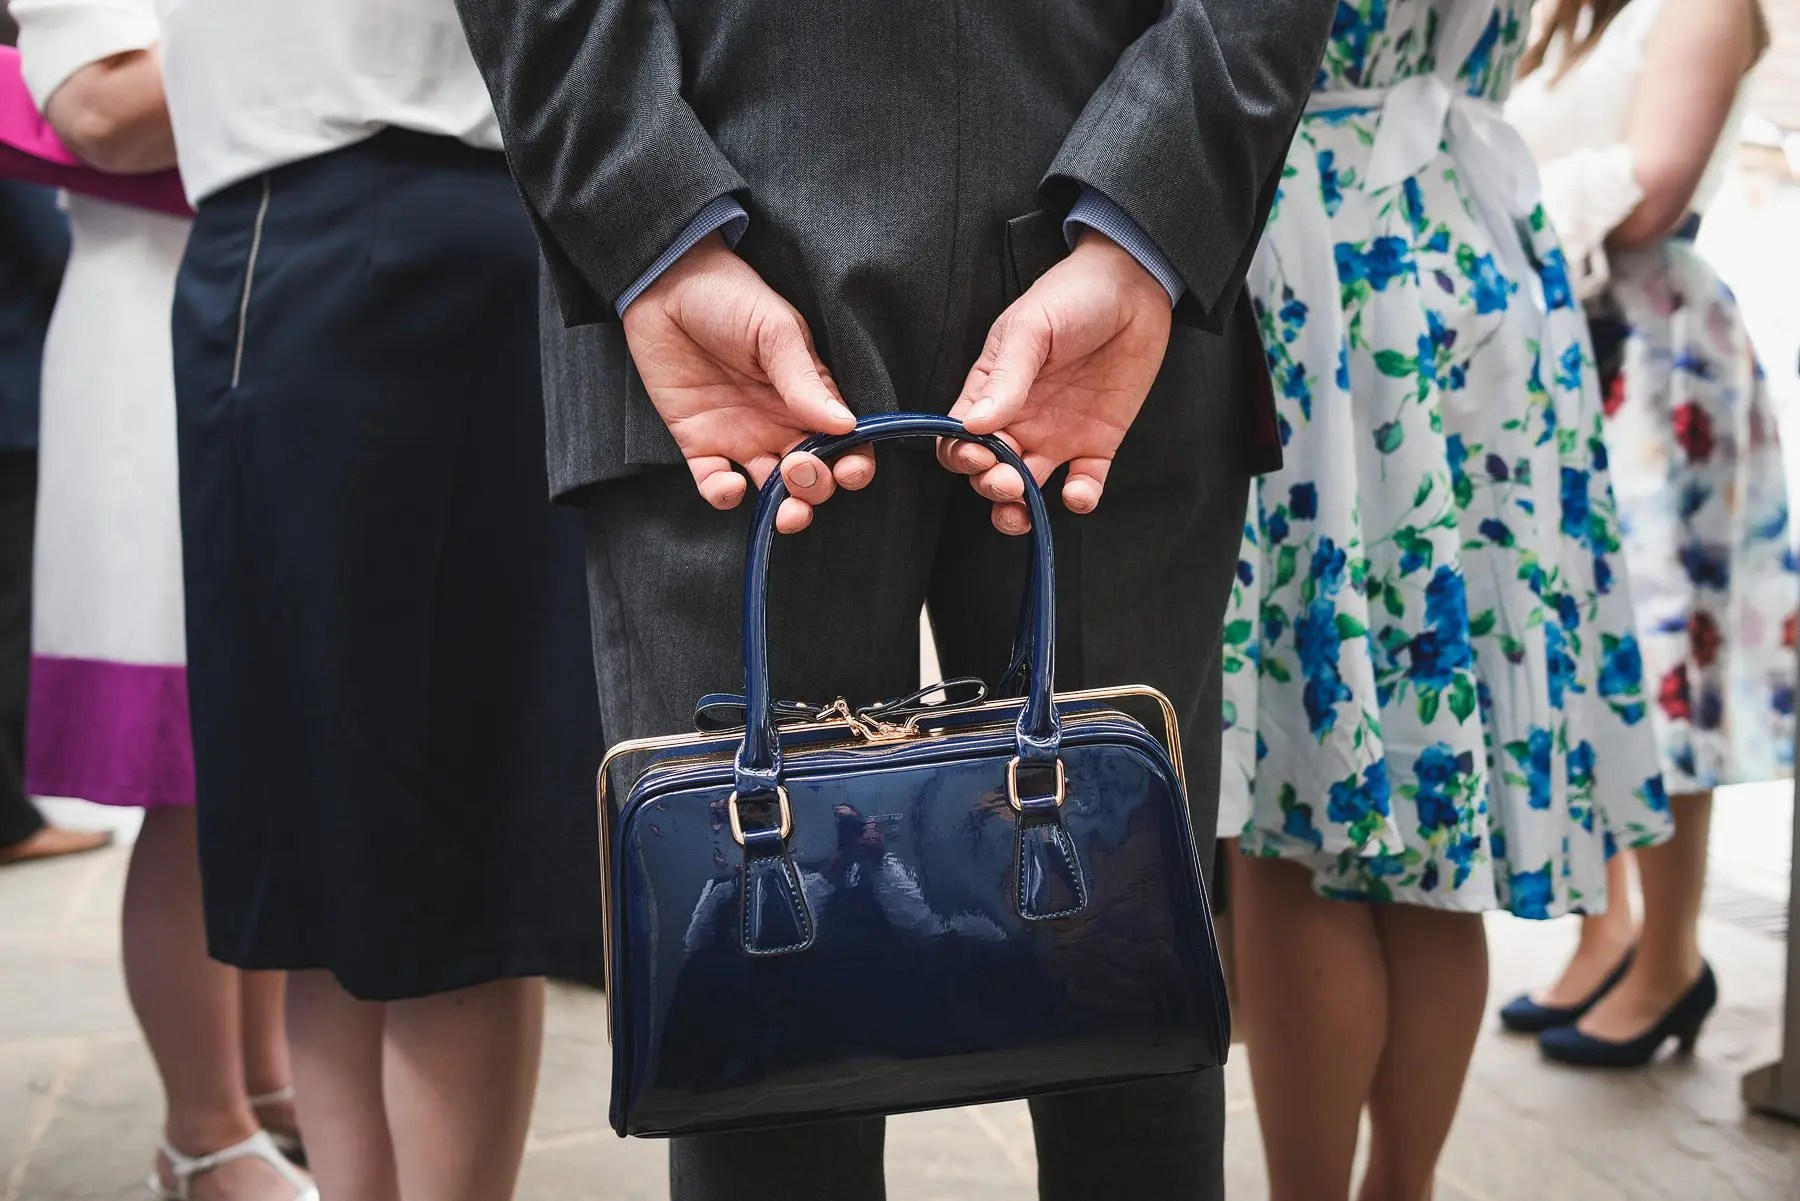 man holding handbag at a wedding